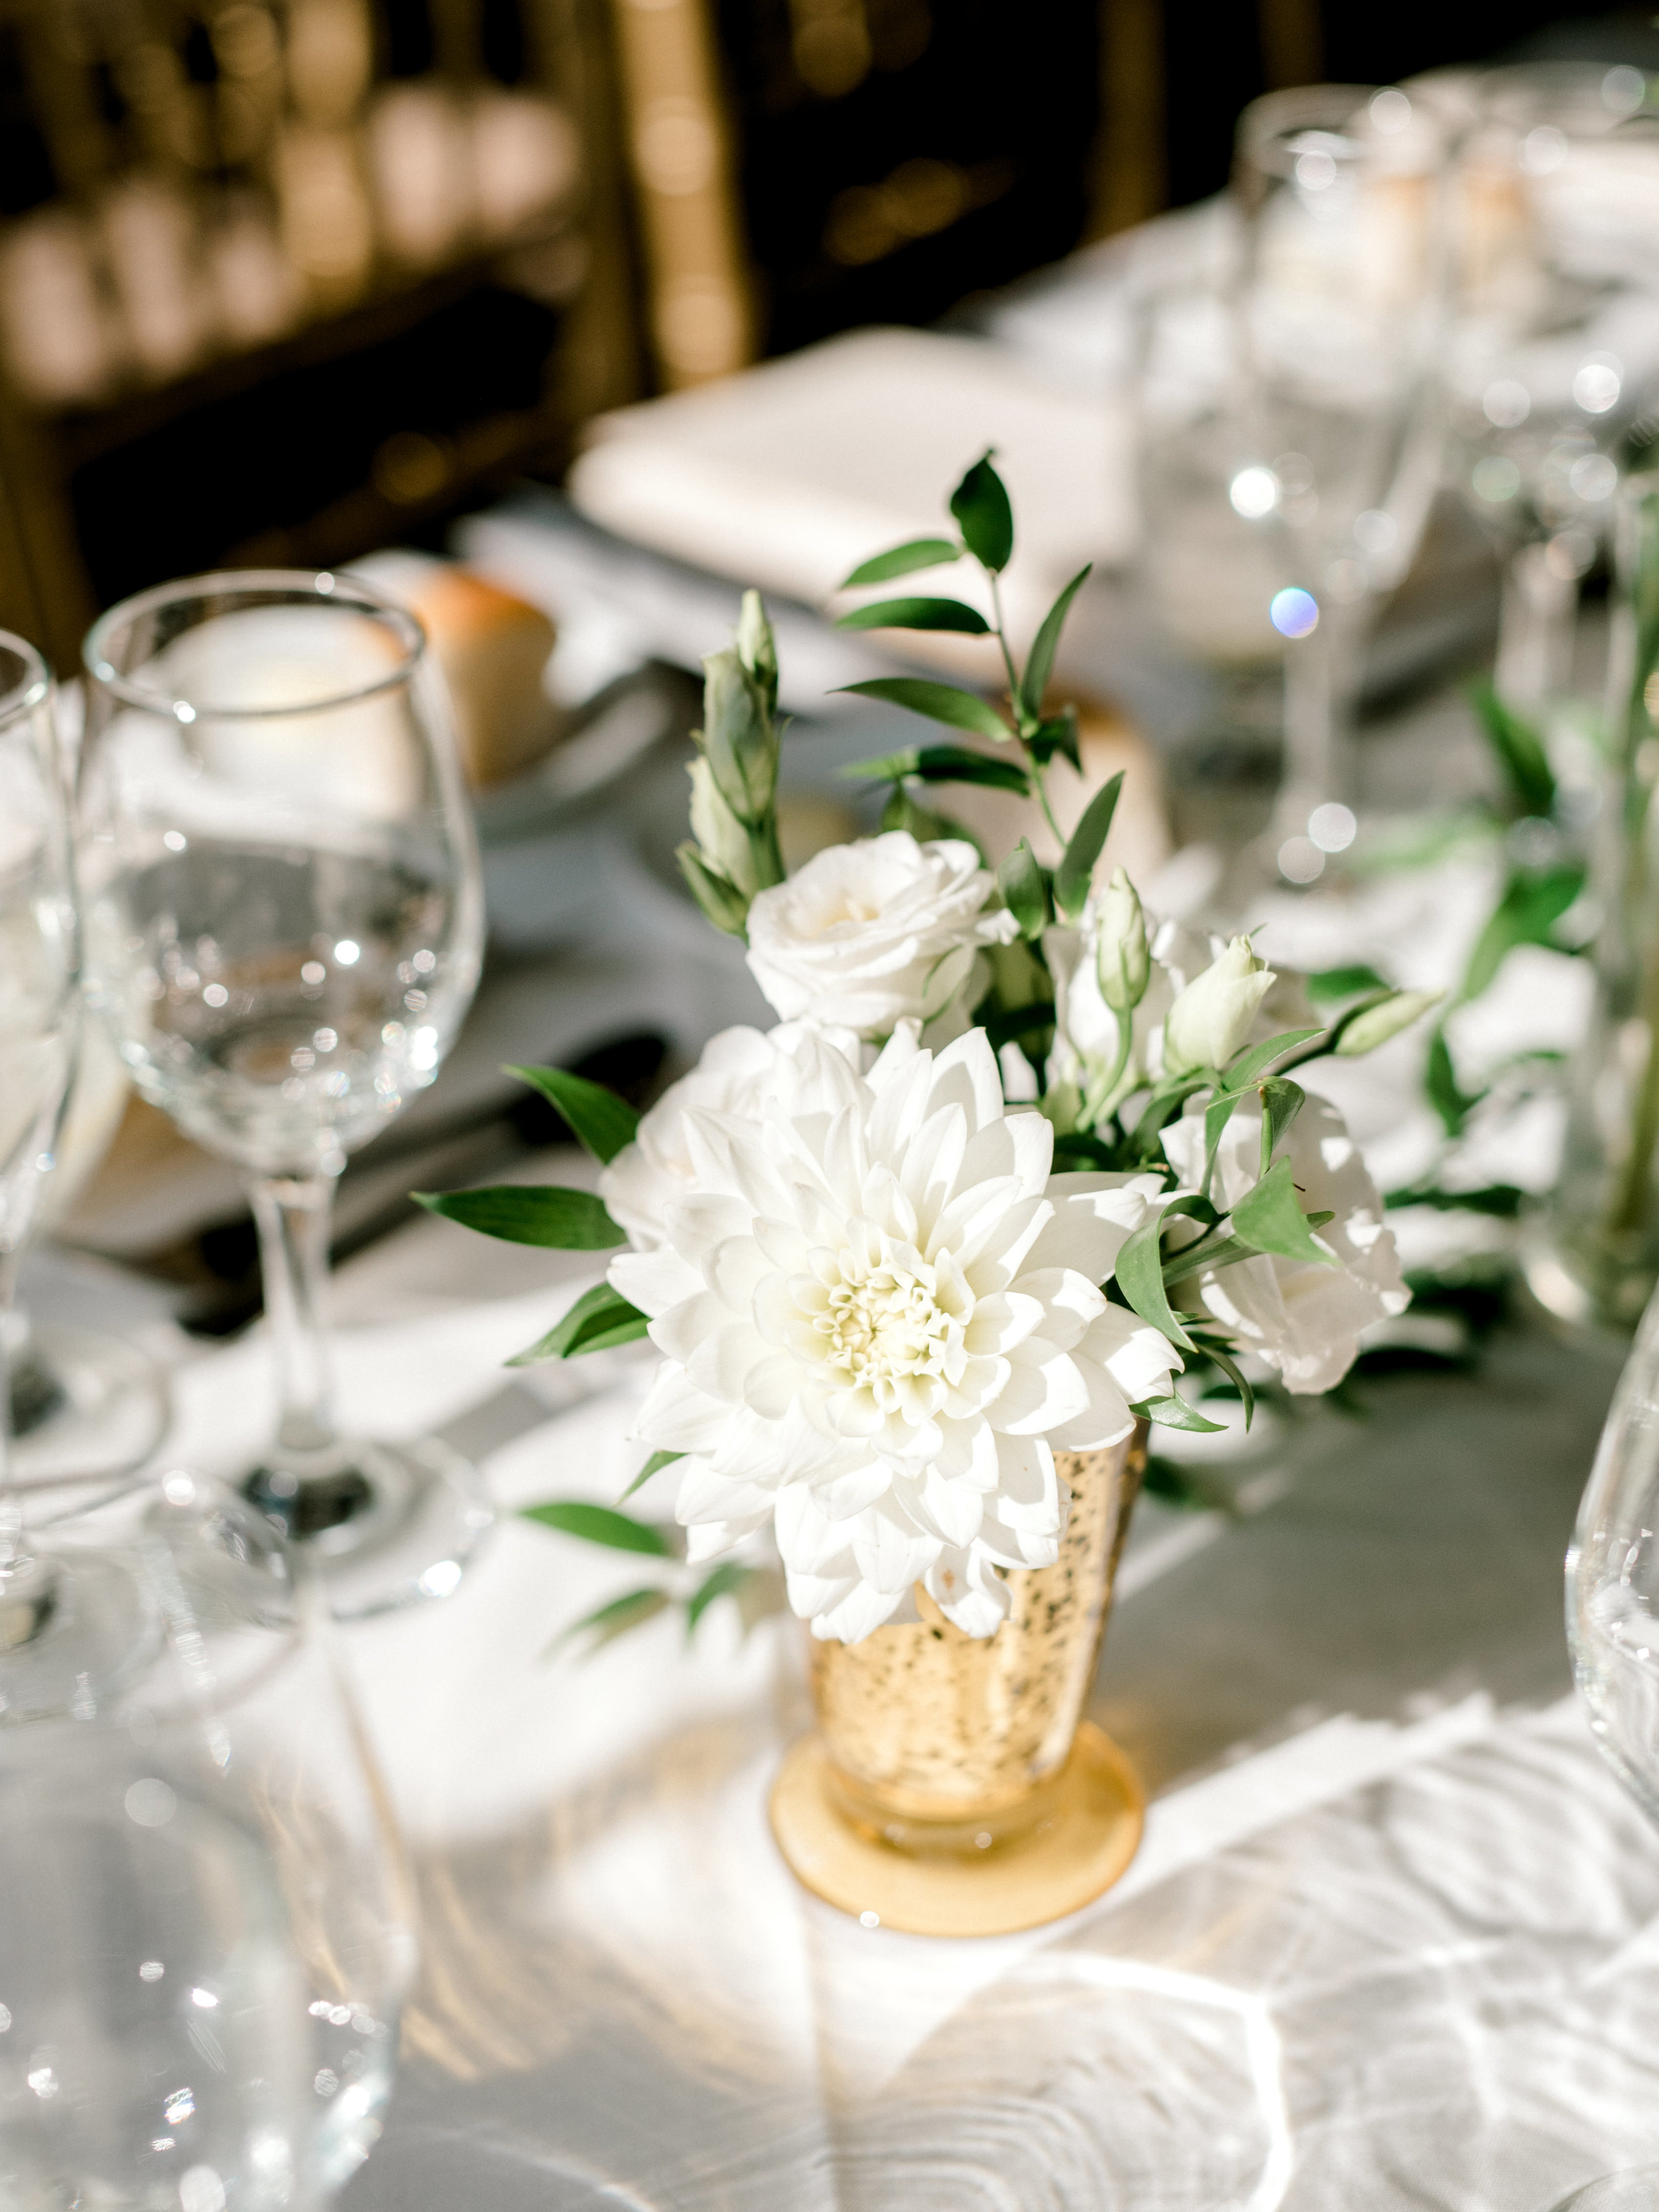 This bursting white dahlia in a gold vase adds a bright touch to the tablescape of this modern summer wedding at Hotel du Village.